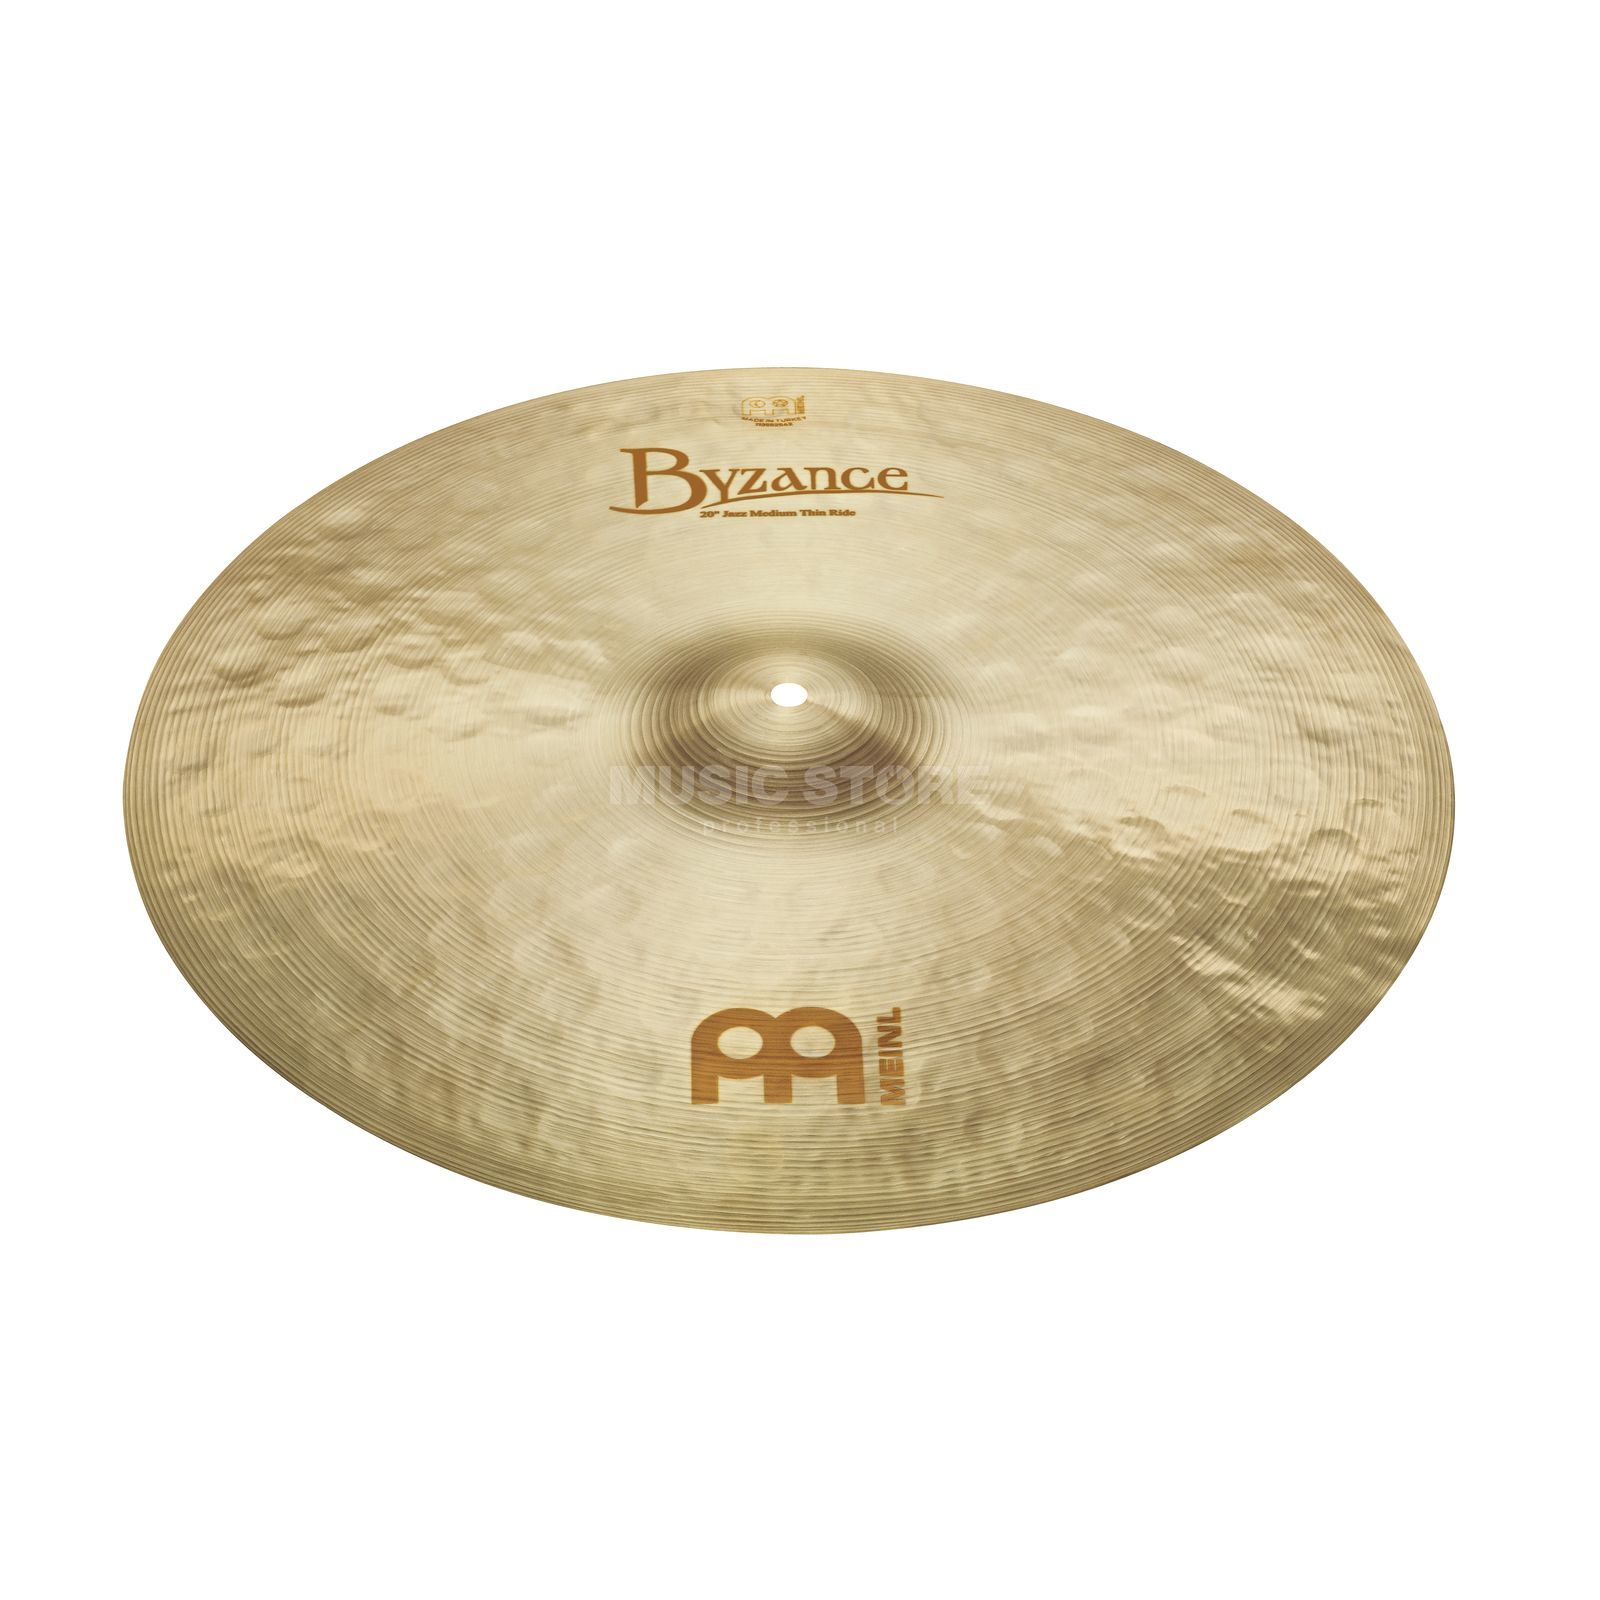 "Meinl Byzance Medium Ride 20"", B20JMR, Jazz Finish Produktbillede"